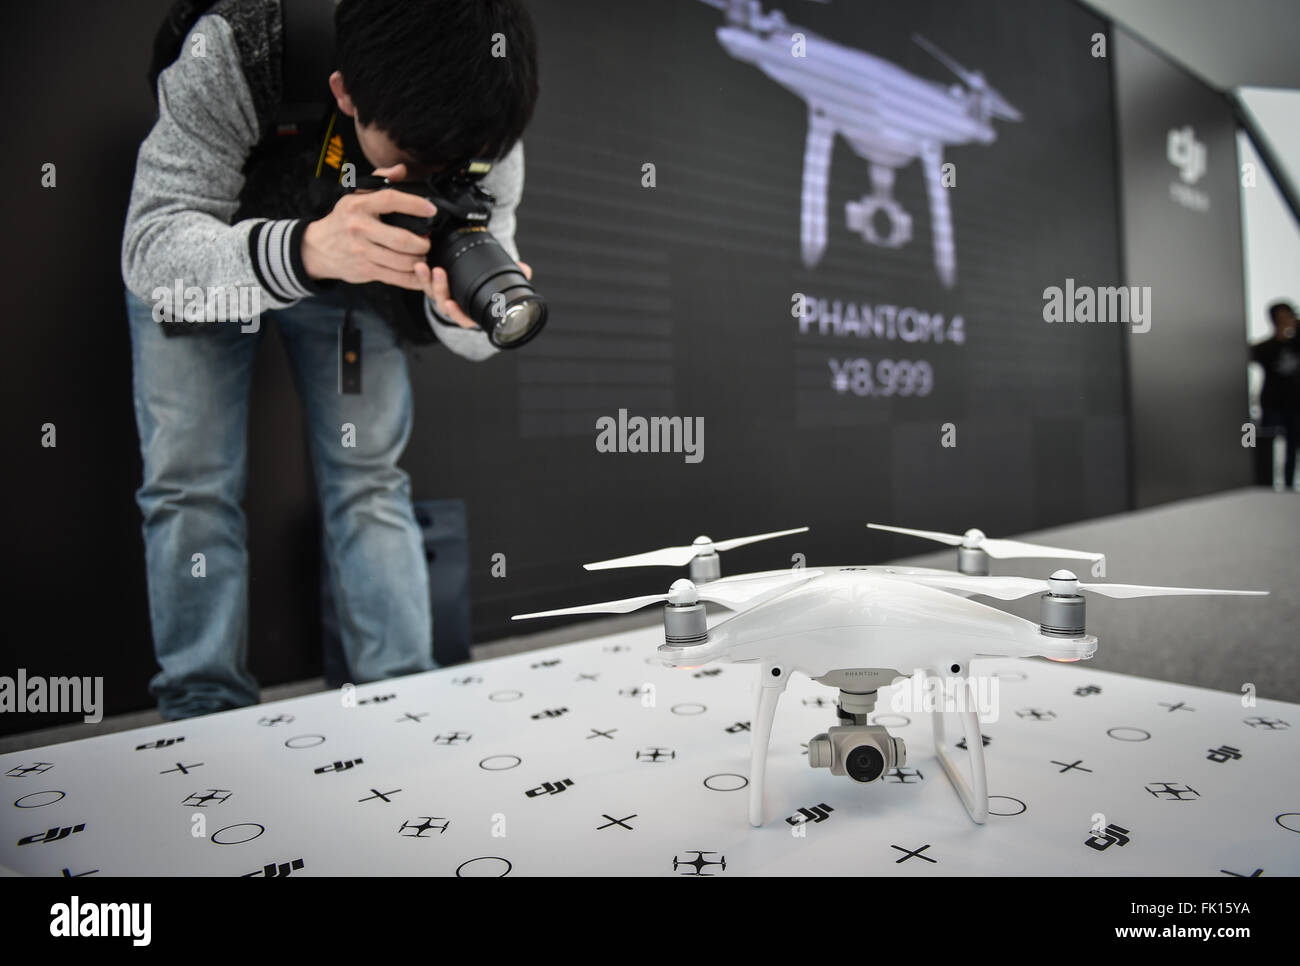 (160305) -- SHENZHEN, March 5, 2016 (Xinhua) -- A photographer takes pictures of a Phantom 4 drone developed by Stock Photo